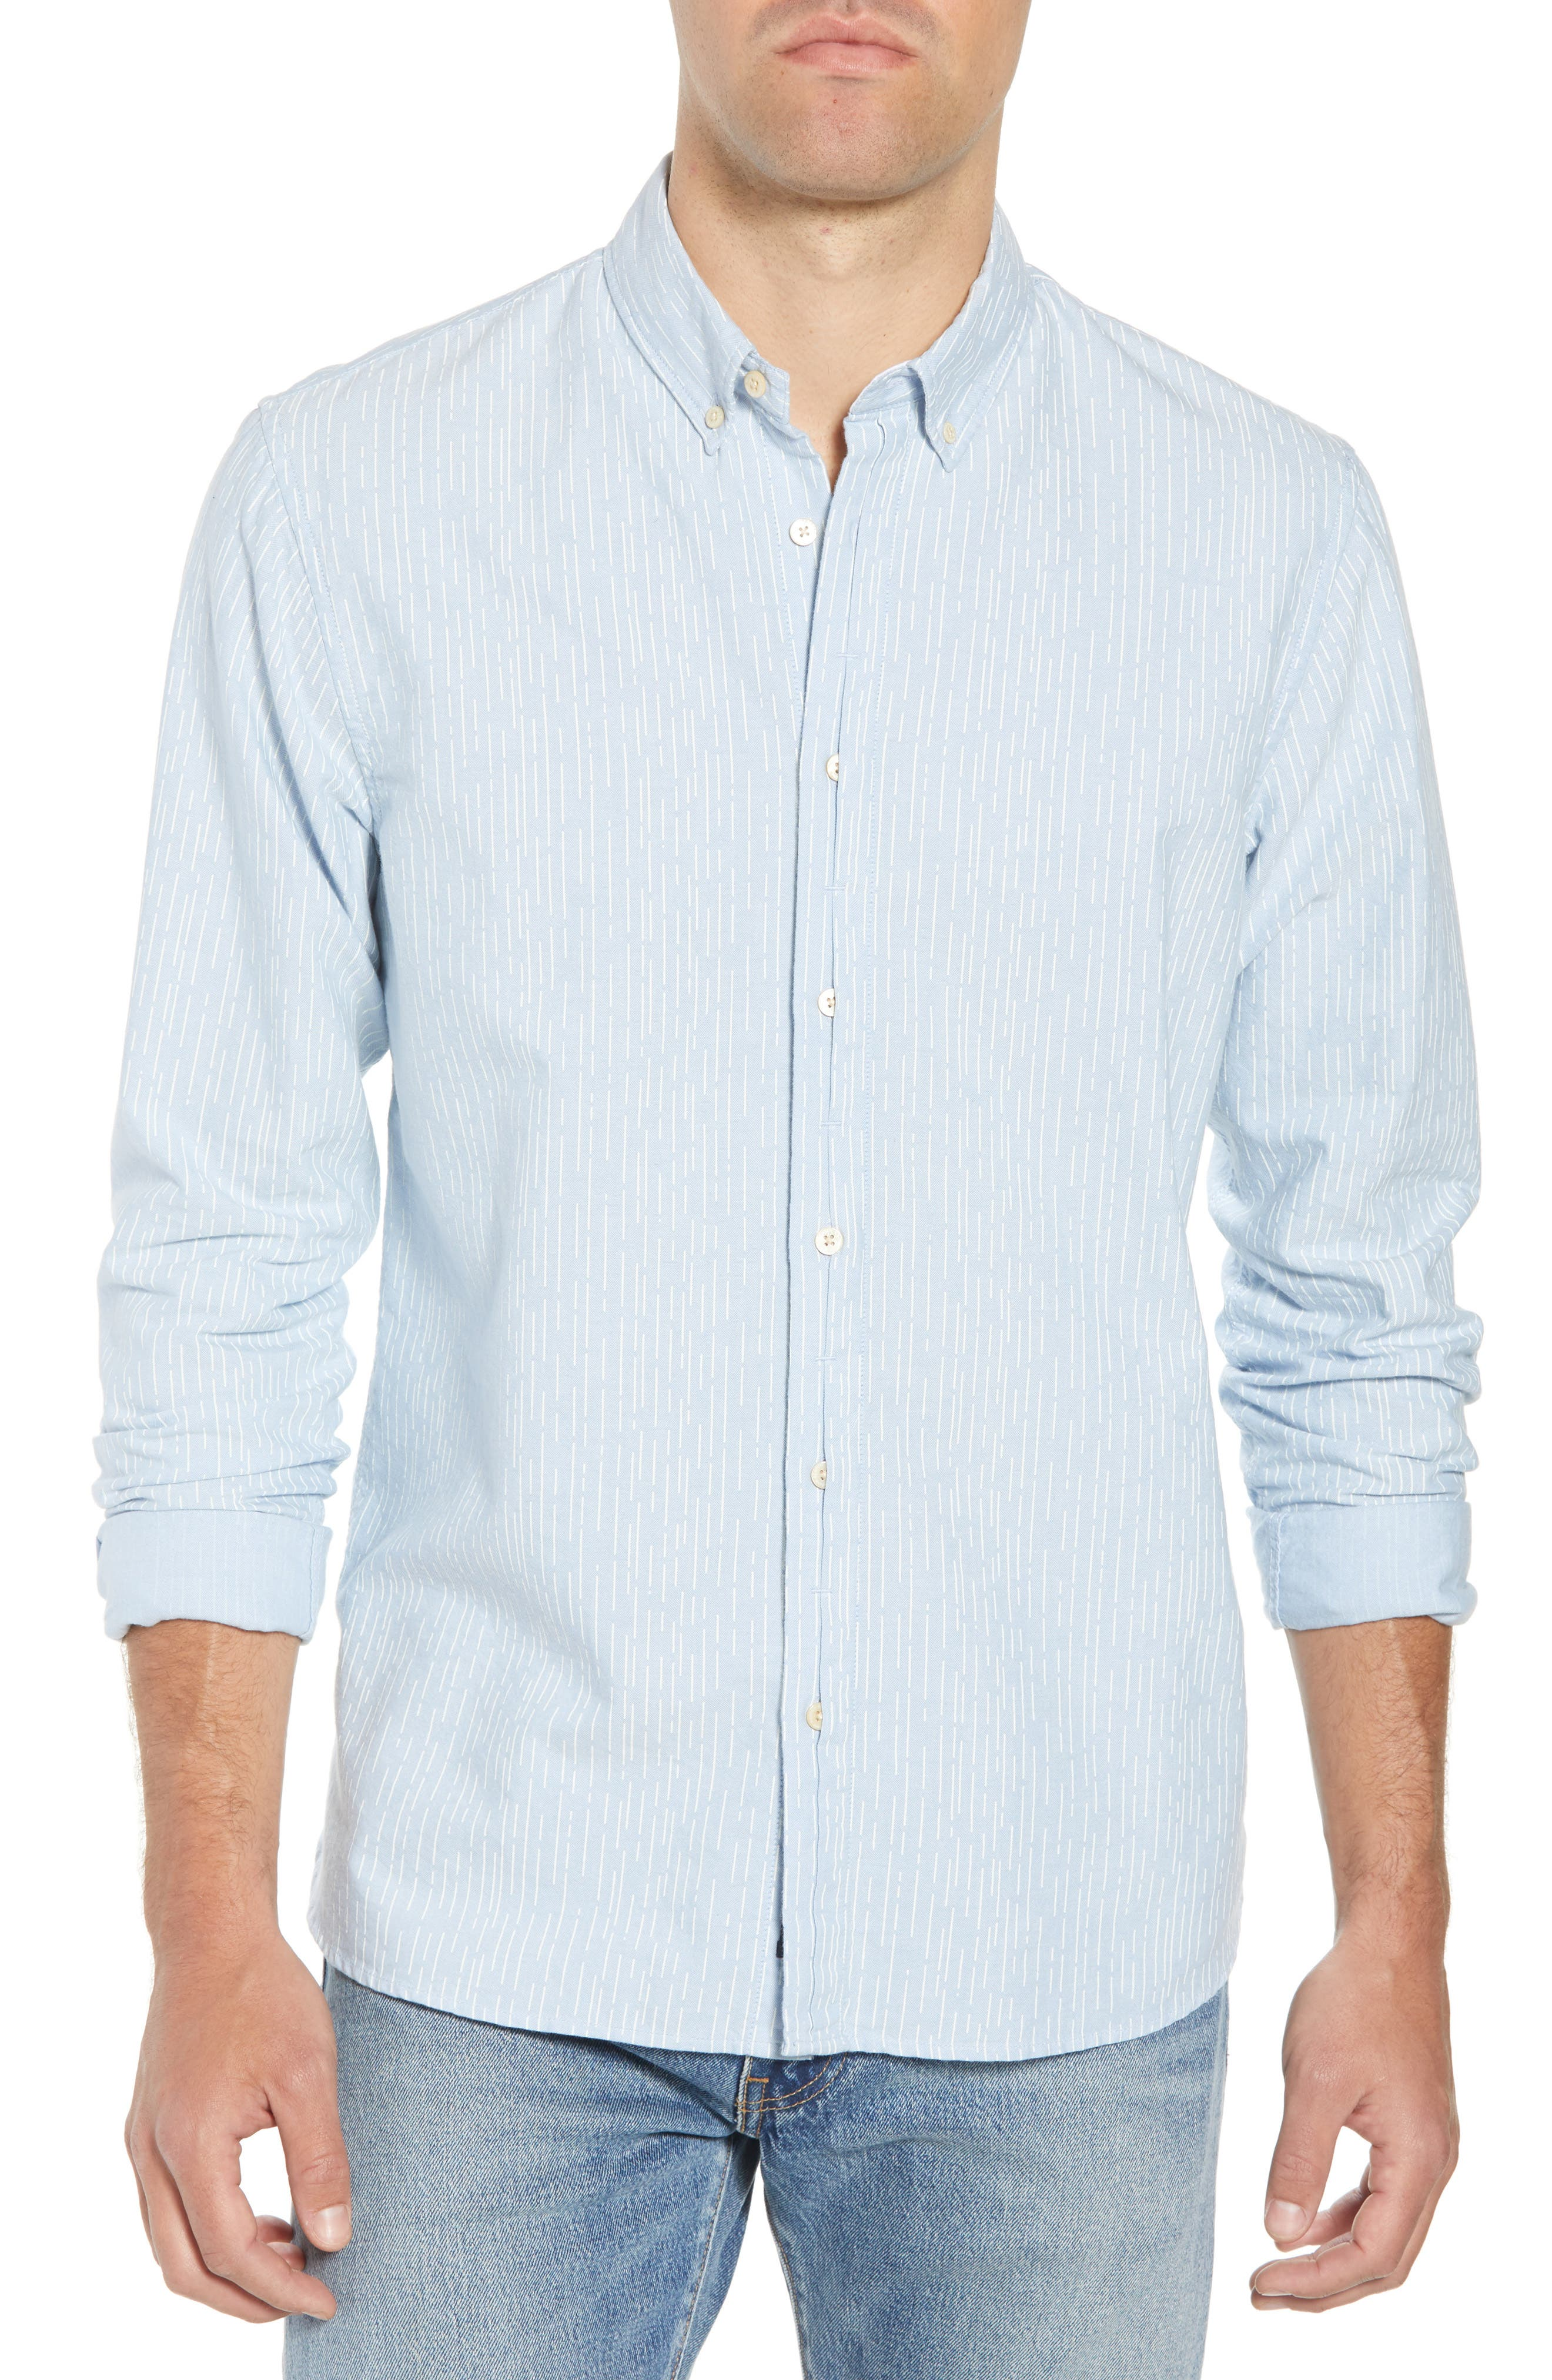 Amsterdams Blauw Striped Sport Shirt,                             Main thumbnail 1, color,                             420